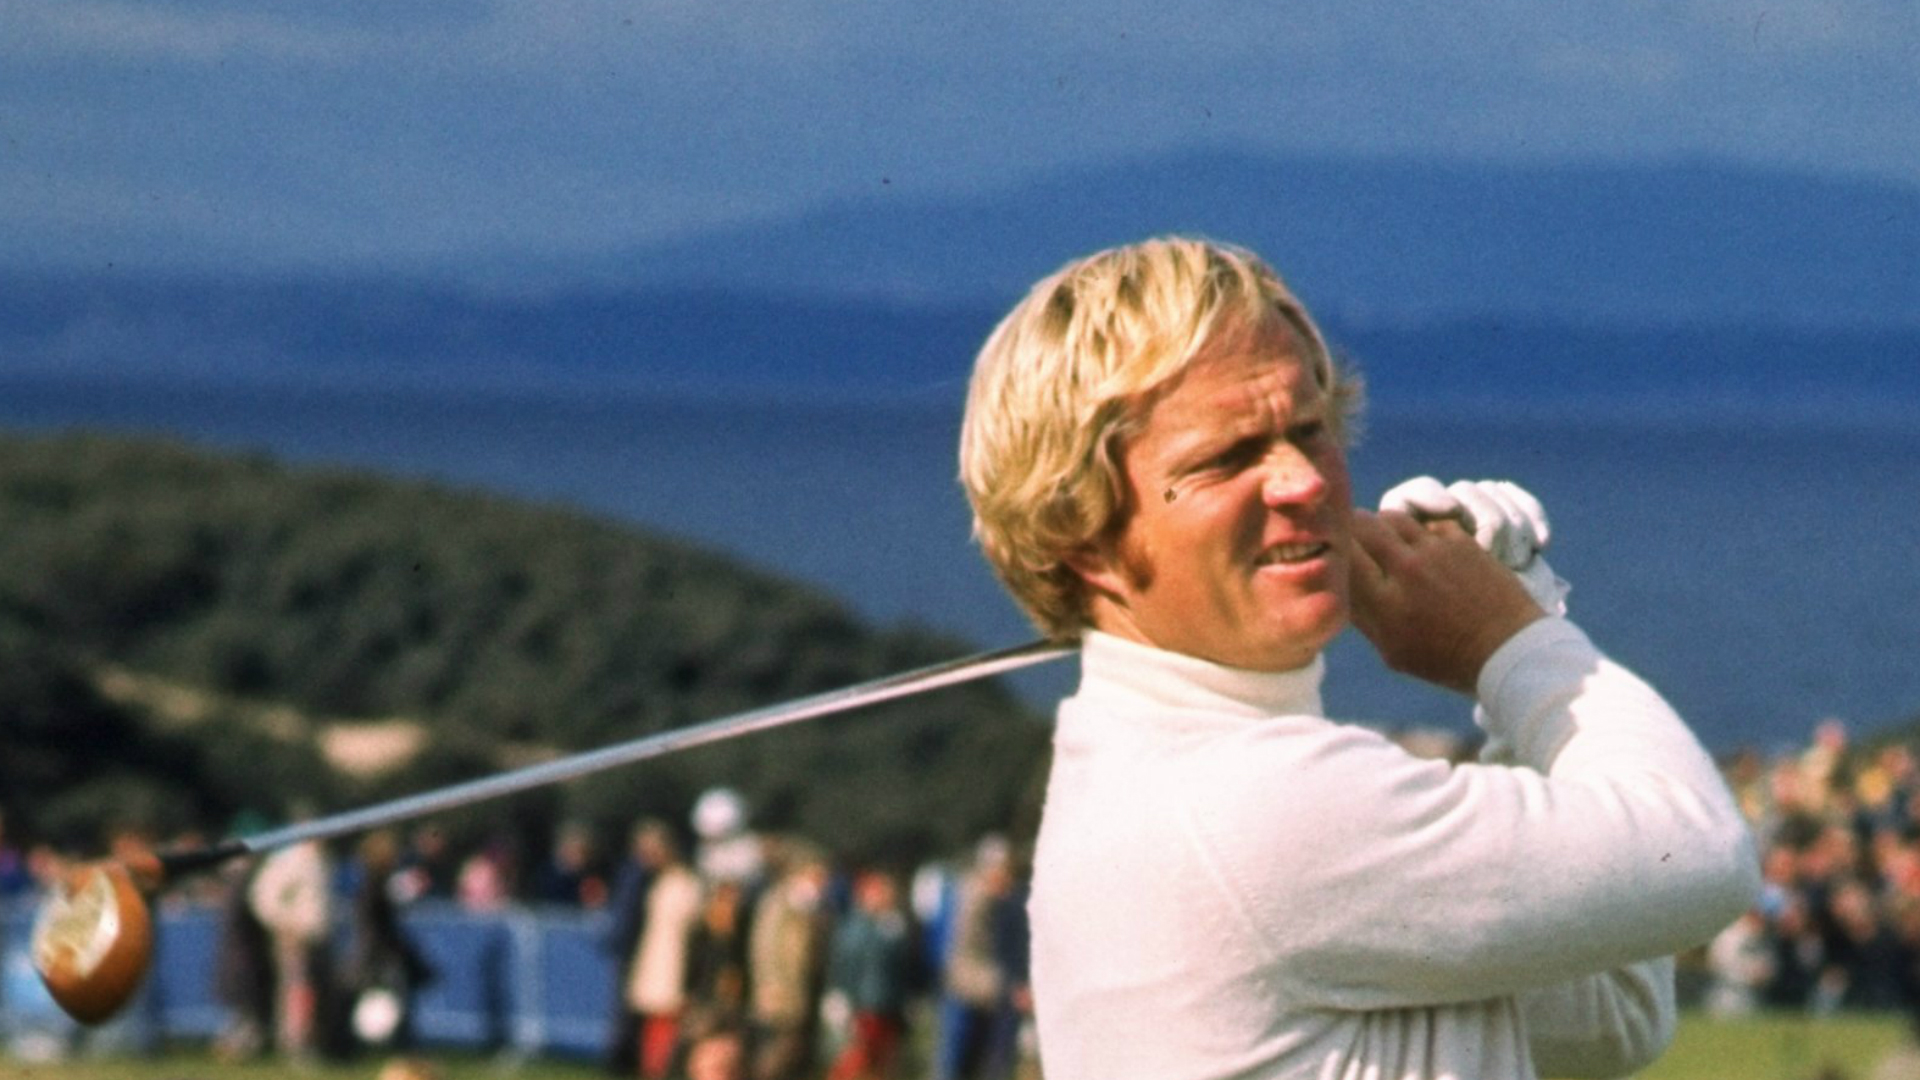 Jack Nicklaus turns 80: How golf's Golden Bear made his first claim for greatness under the eyes of Hogan